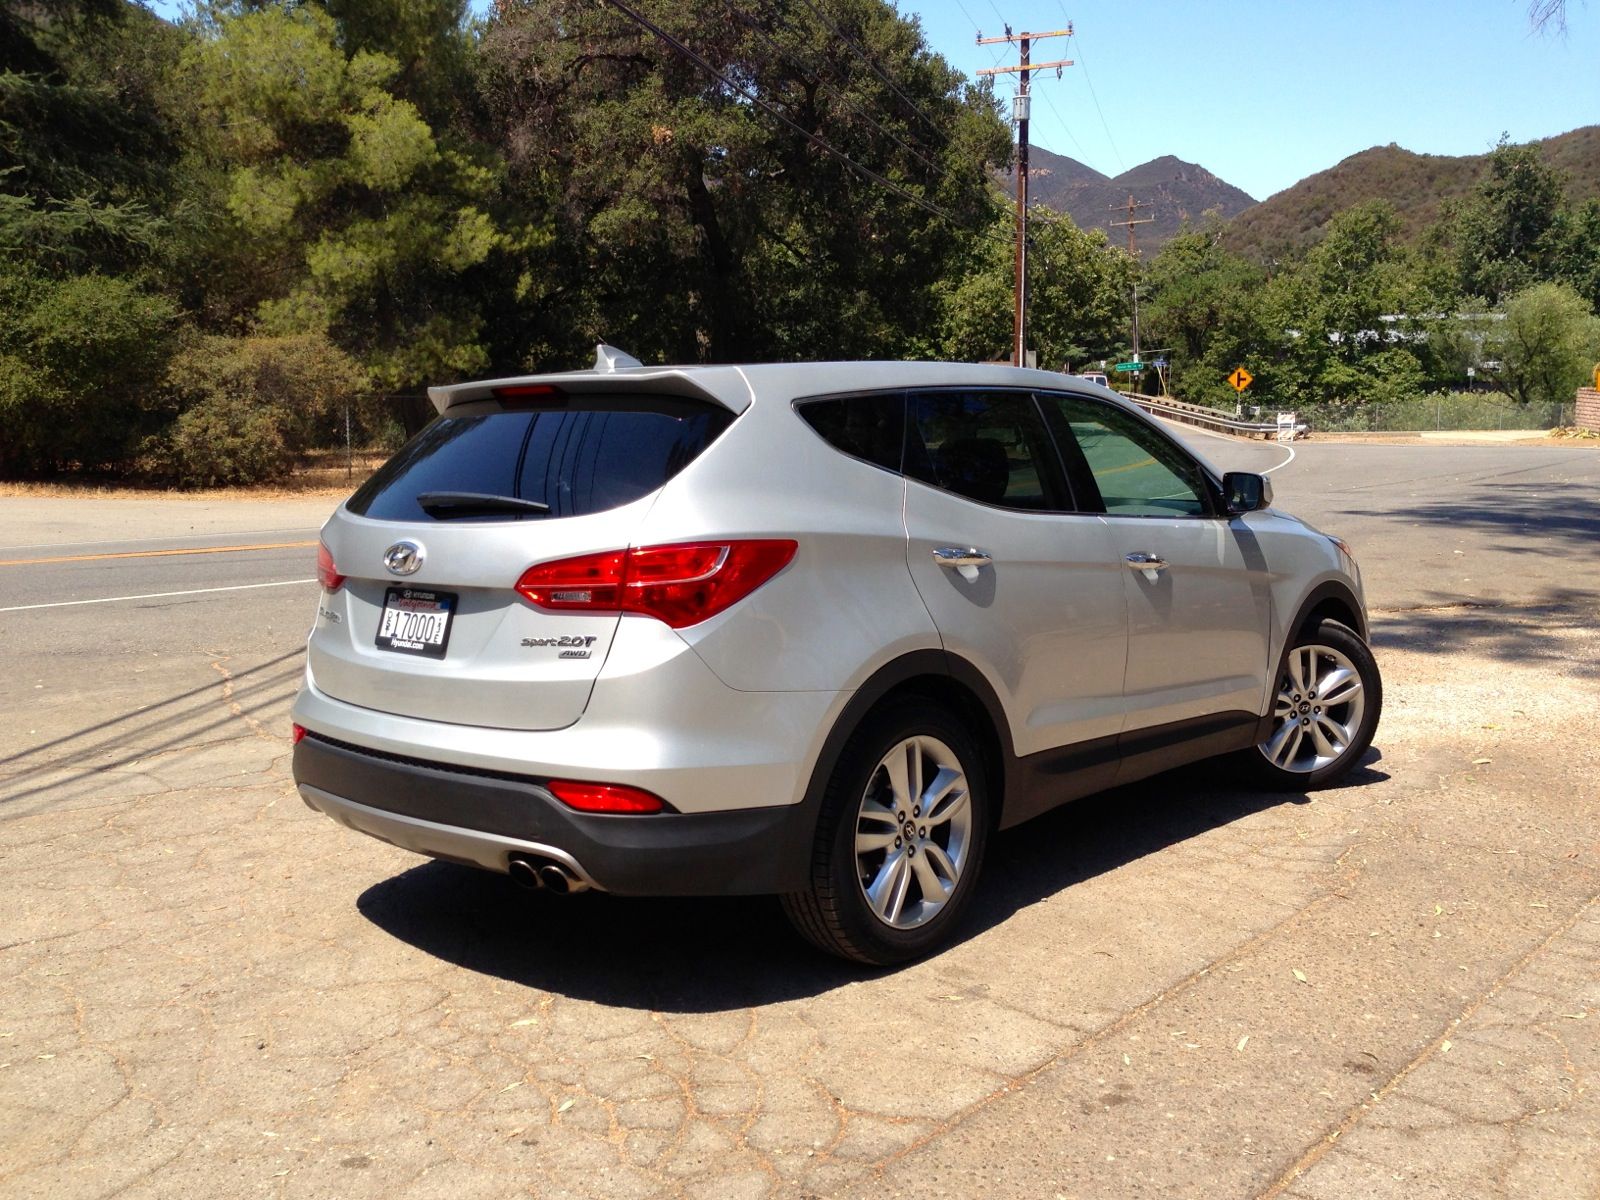 Hyundai Santa Fe 2.0L Turbo Review - photos | CarAdvice